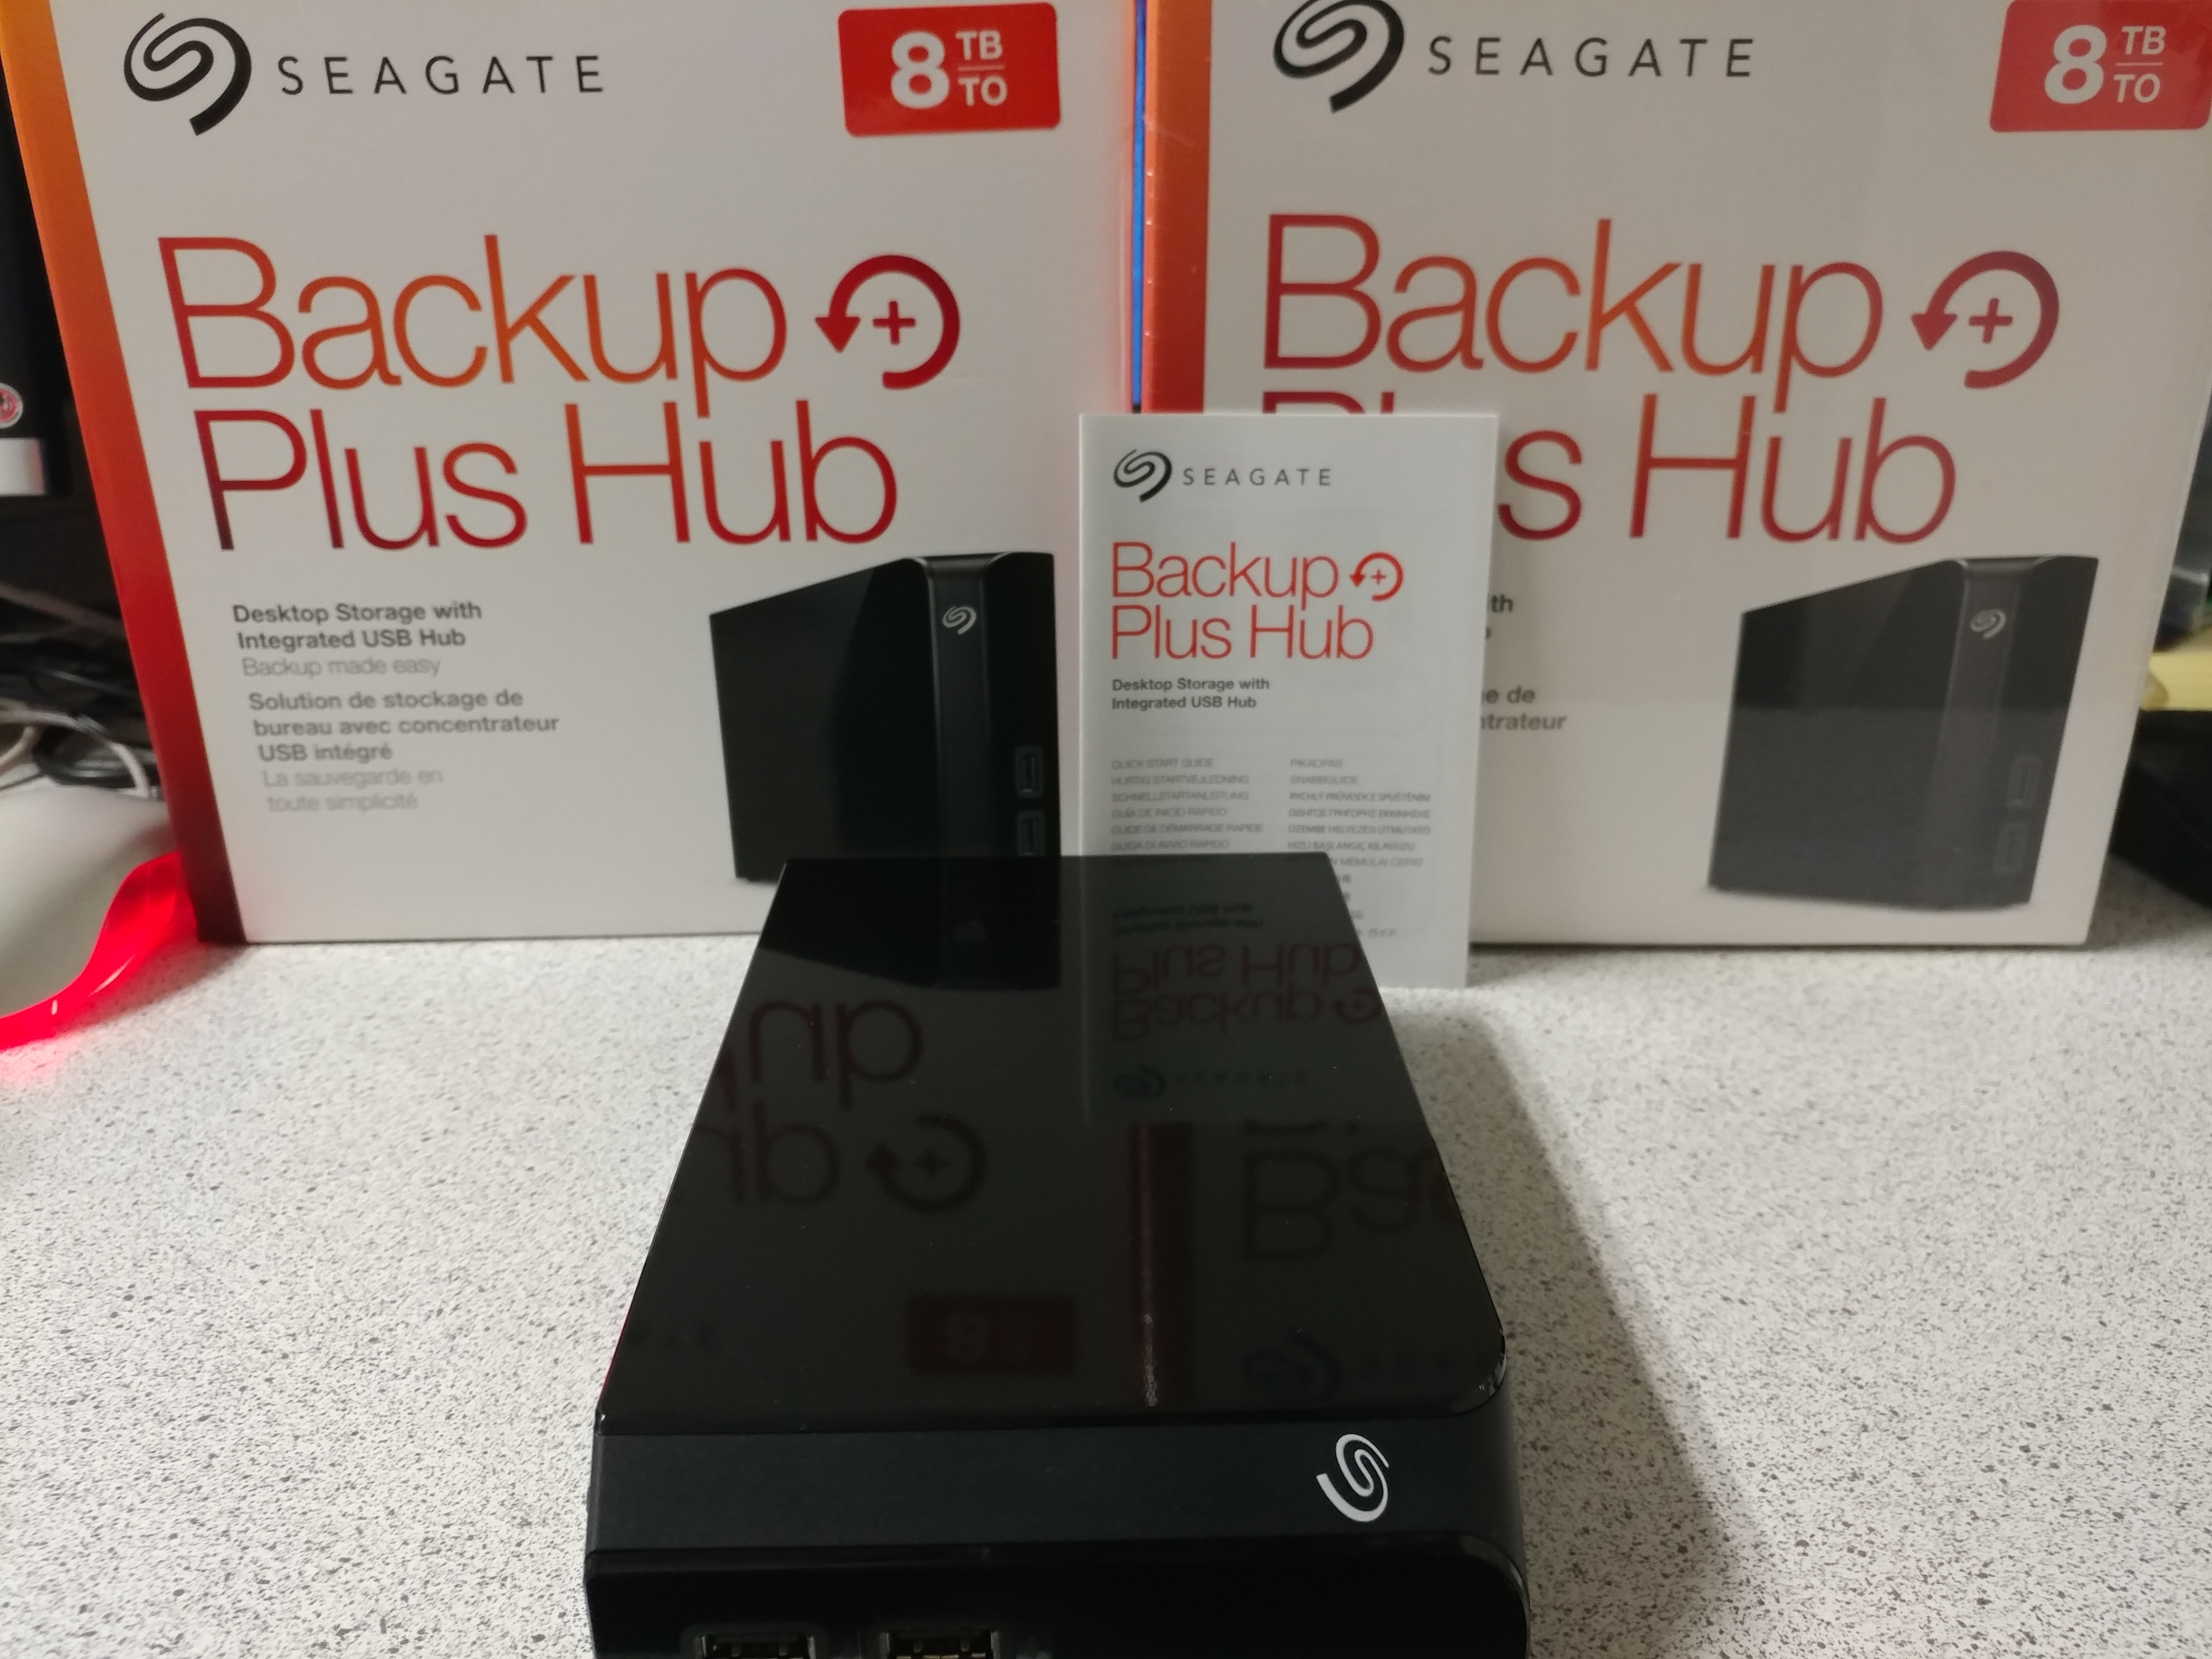 new external hard drives (used for backup)